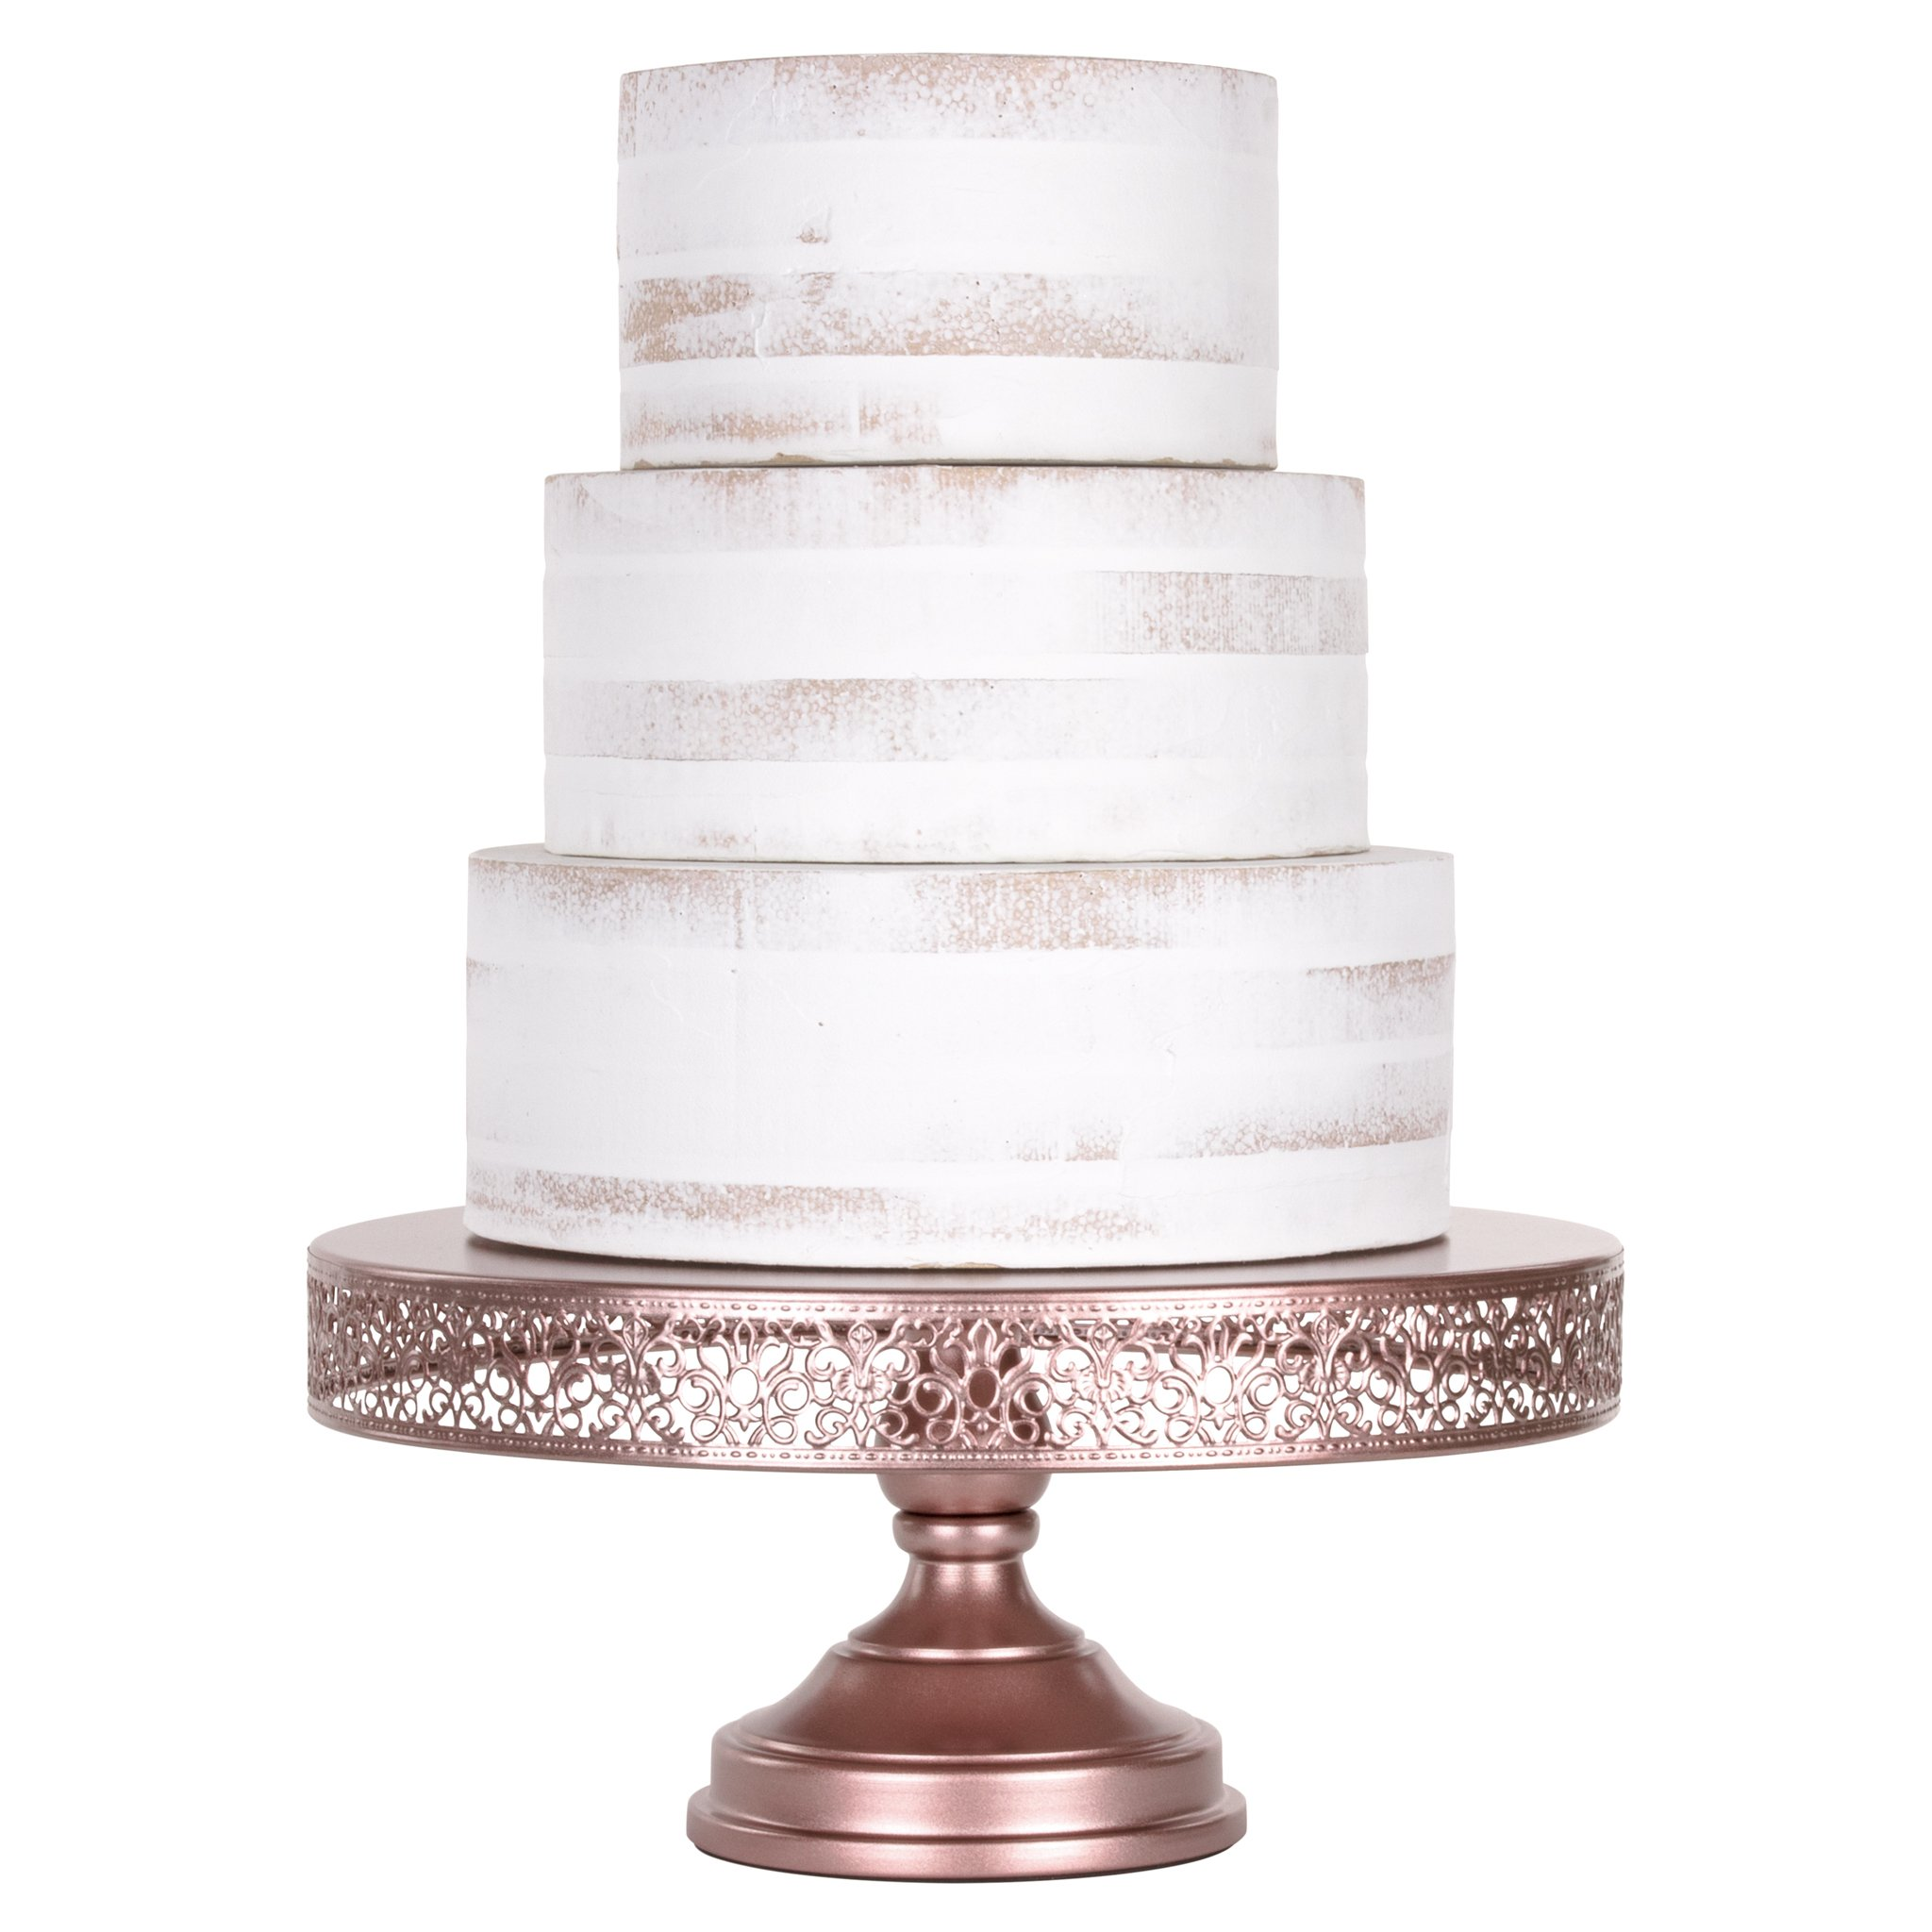 Details About 5 Tier Cascading Wedding Cake Stand Stands Set